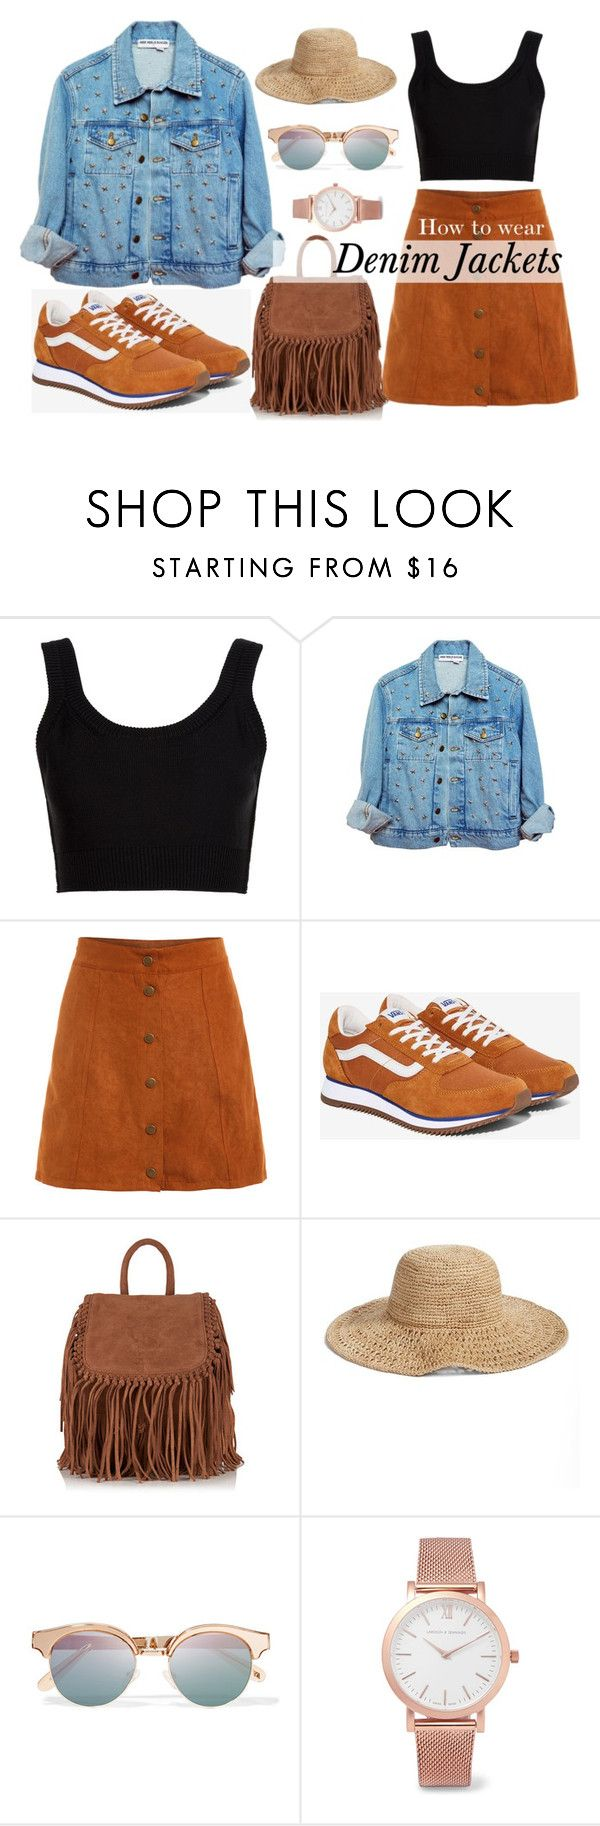 """Denim Jackets"" by ayuhariyani on Polyvore featuring Calvin Klein Collection, High Heels Suicide, Vans, Superdry, Nordstrom, Le Specs, Larsson & Jennings, denim, sneakers and denimjackets"